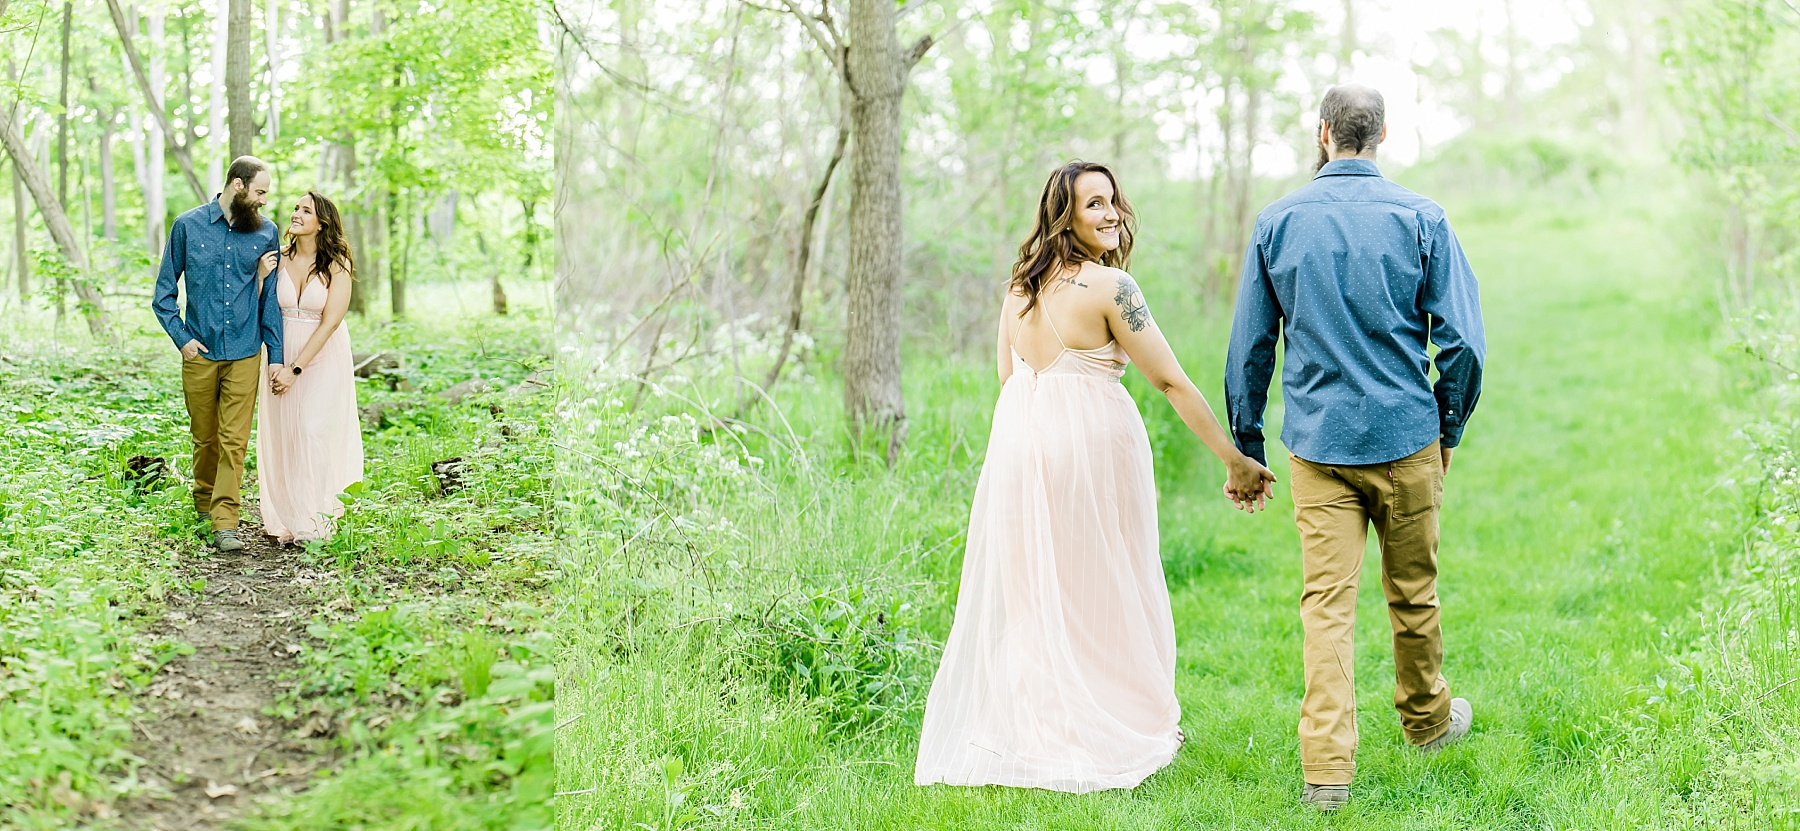 monticello indiana wedding engagement photography simple adventure weird_0021.jpg